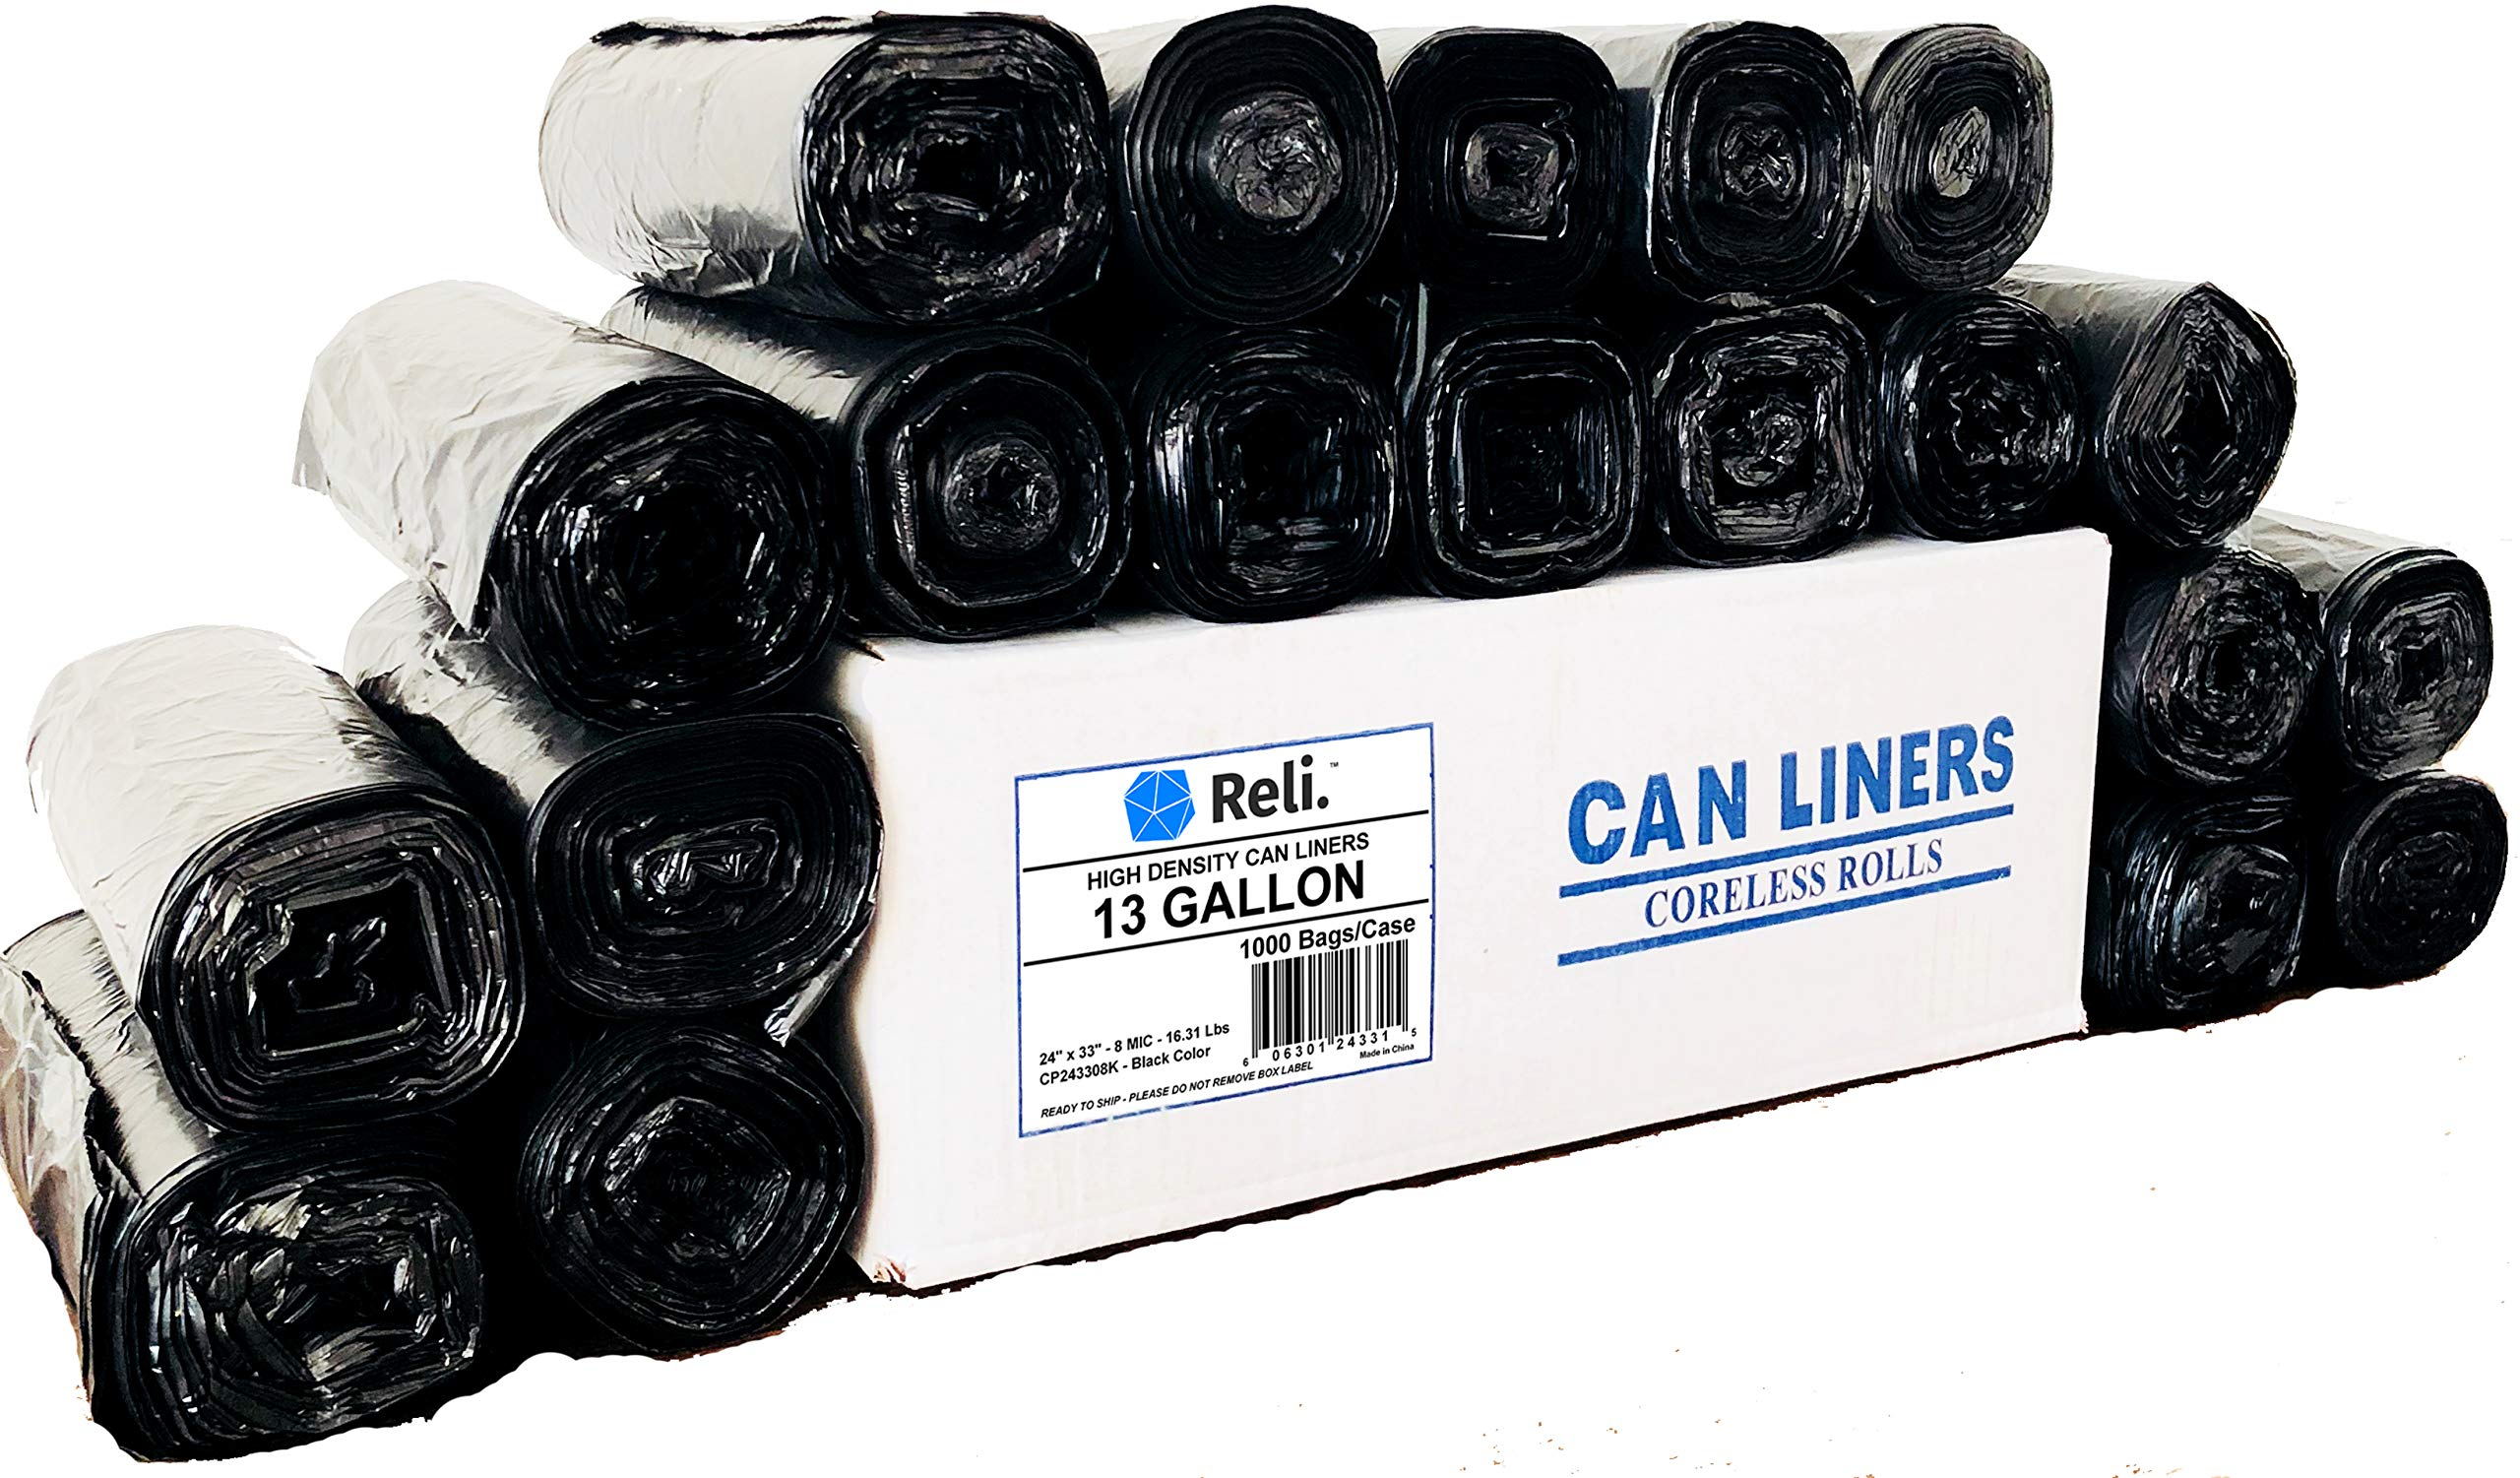 Reli. Trash Bags, 13 Gallon (Wholesale 1000 Count) (Black) - Can Liners, Garbage Bags with 13 Gallon (13 Gal) to 16 Gallon (16 Gal) Capacity